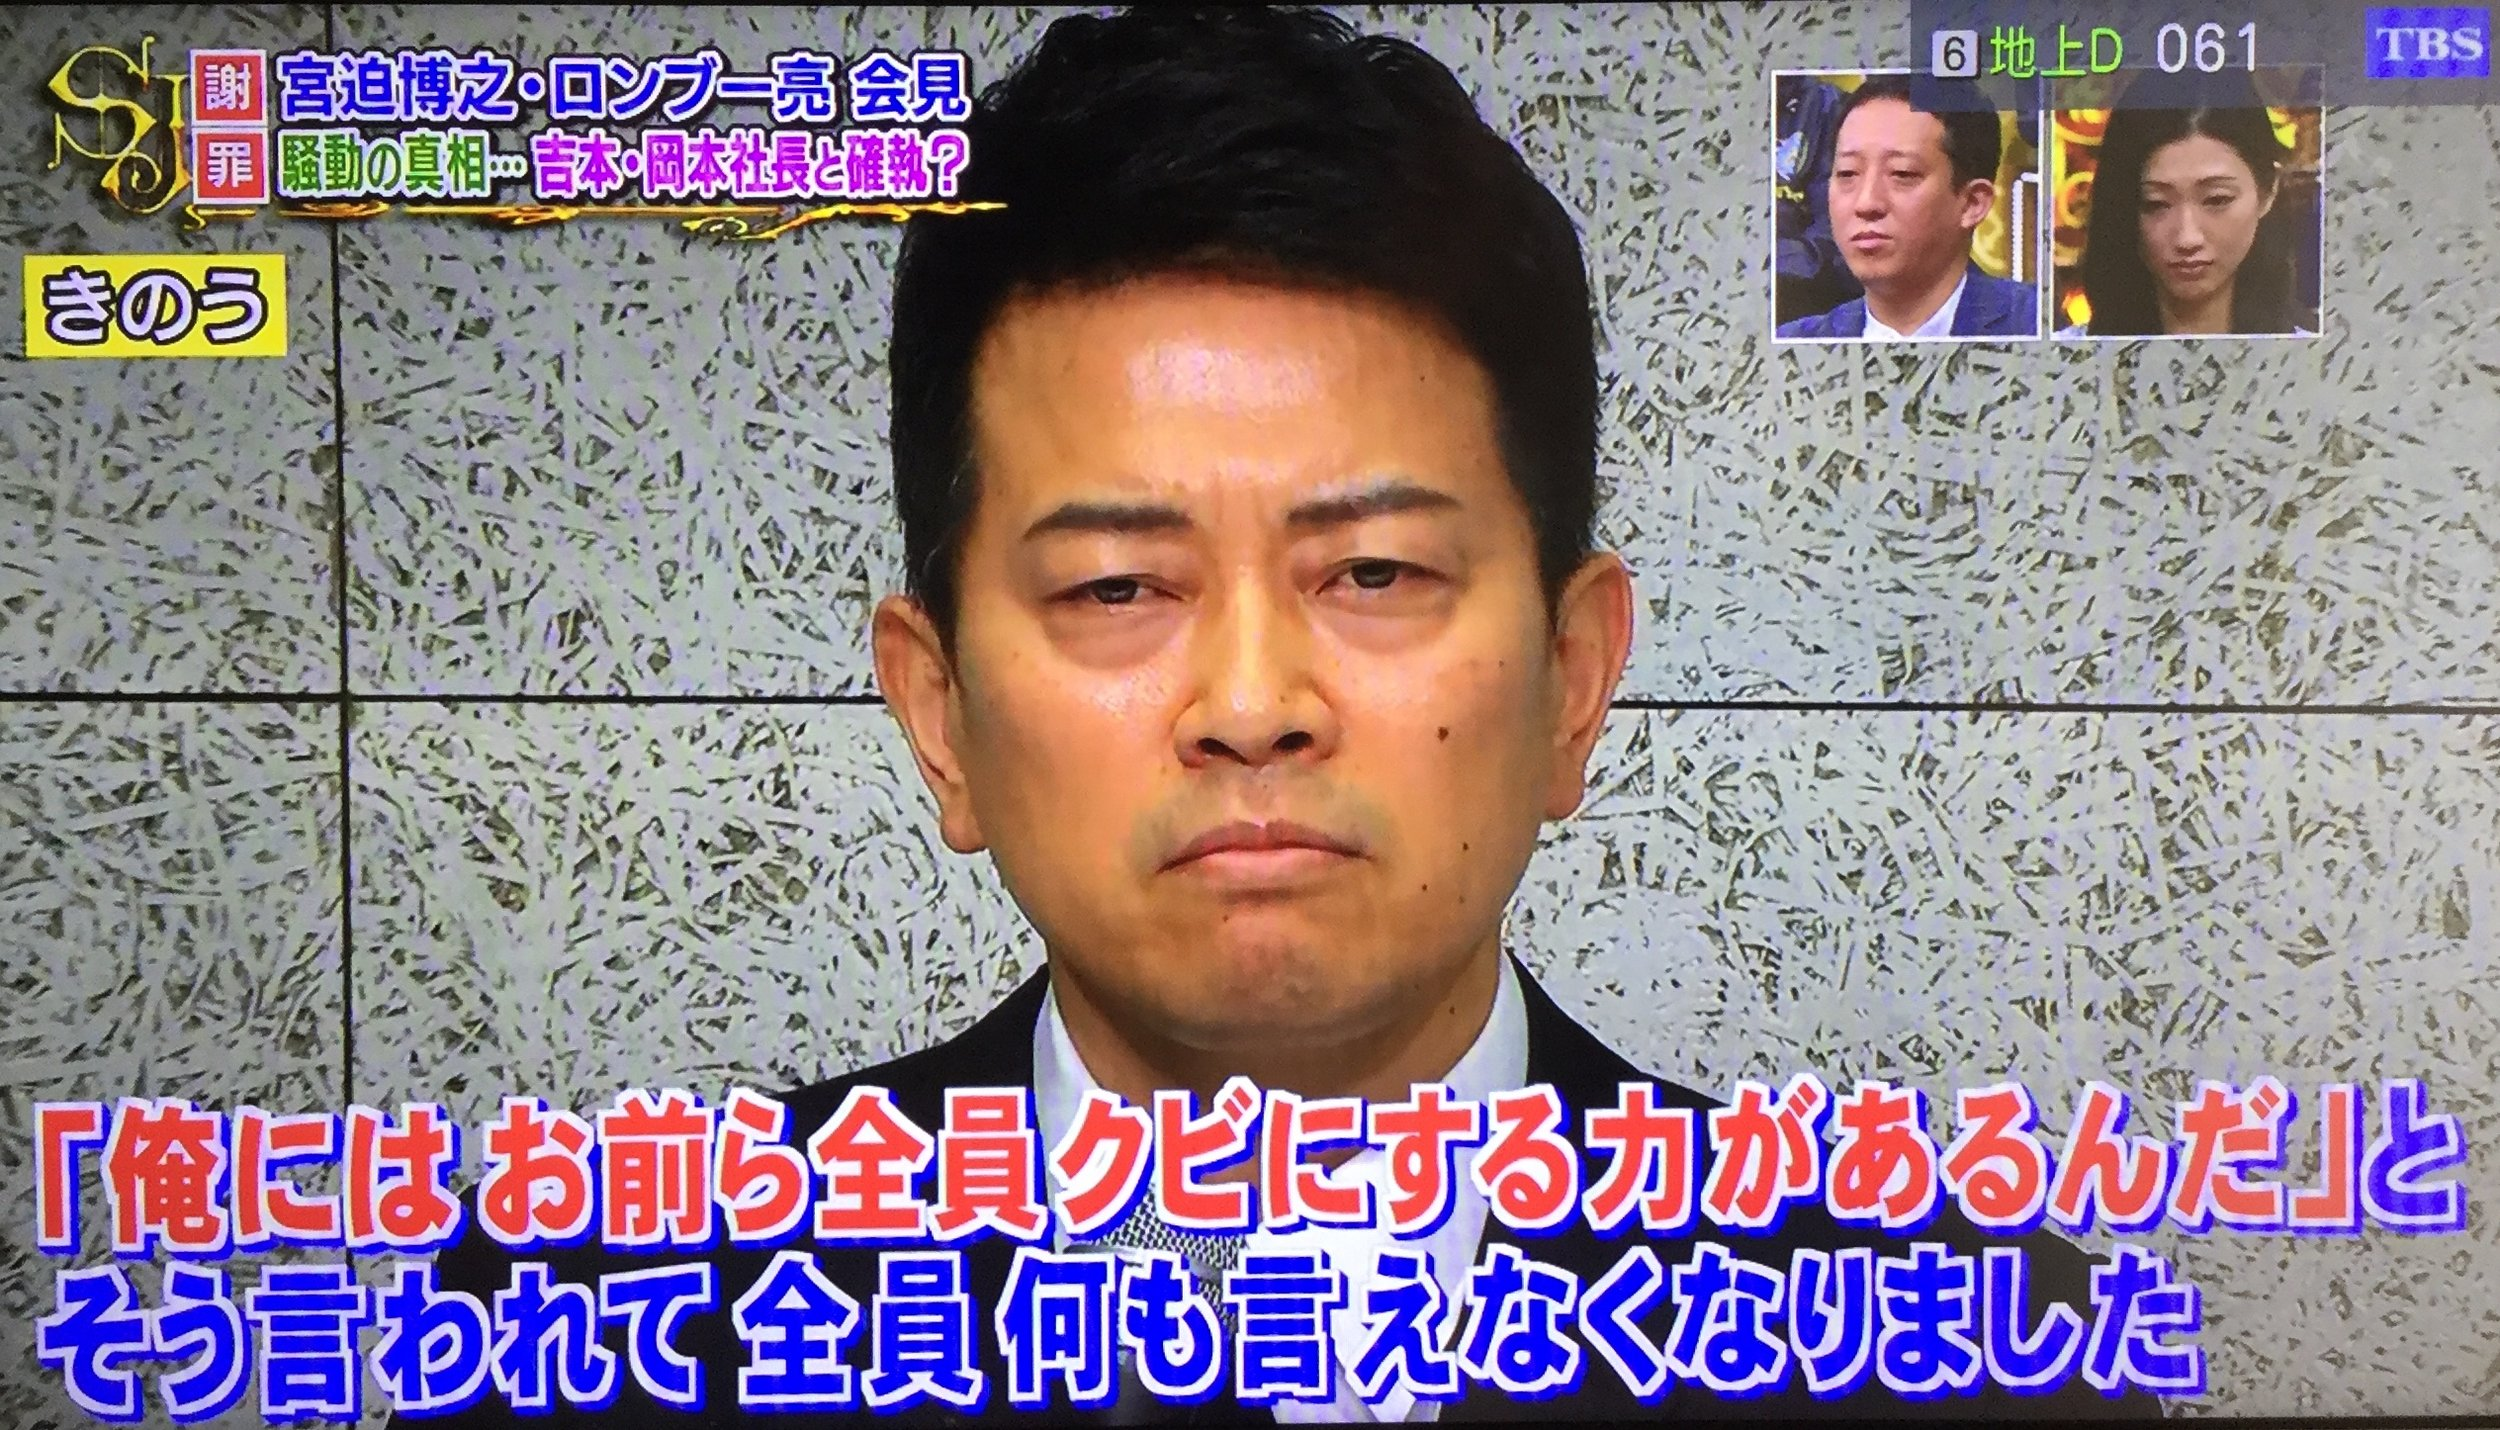 """At the press conference Miyasako states: """"He said, """"I have the power to fire all of you."""" and once he said that we couldn't say anything."""""""